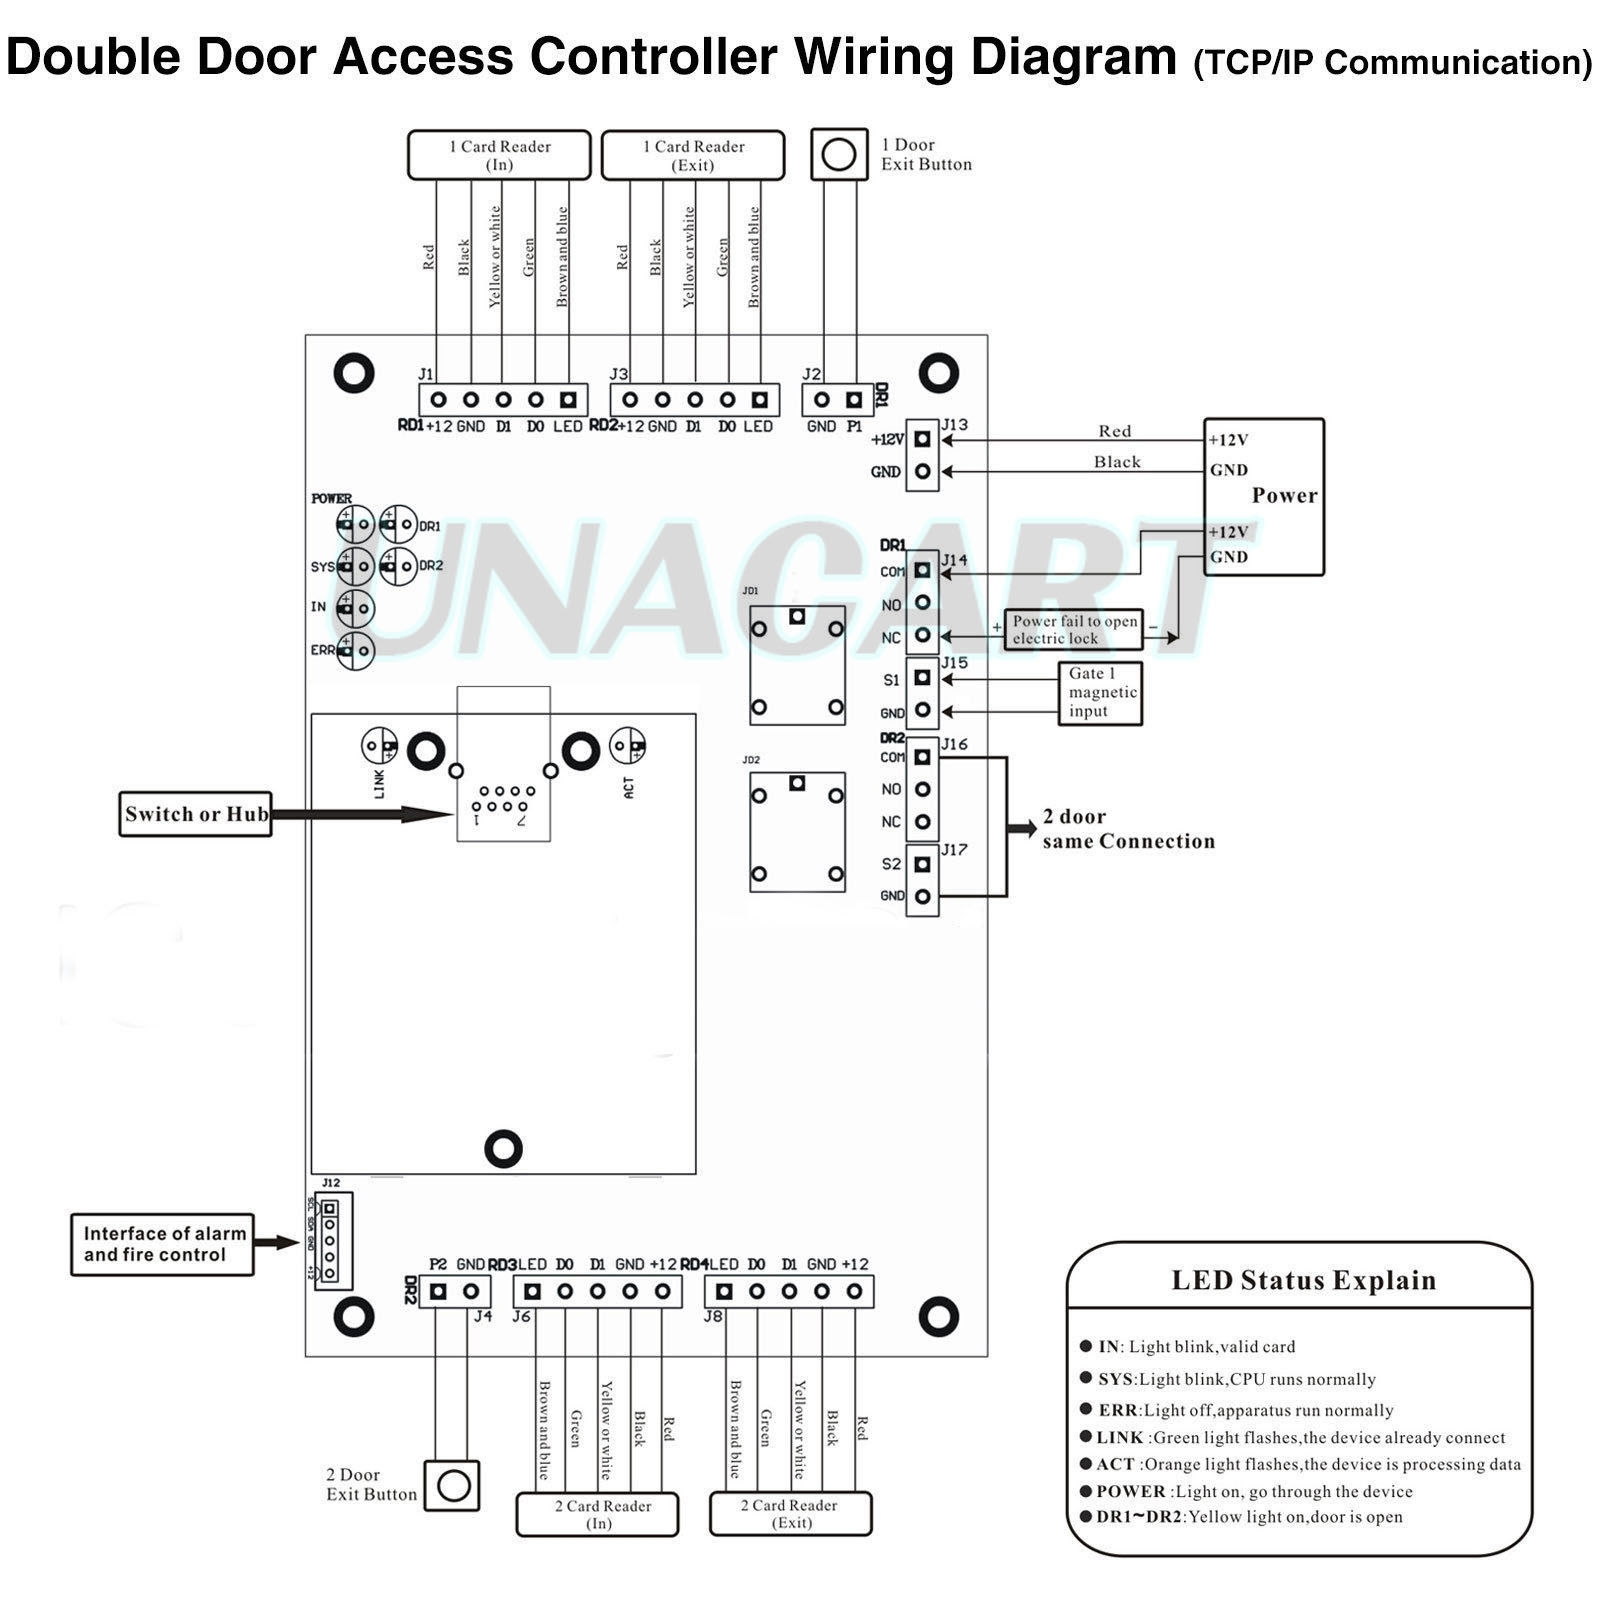 hid rp40 wiring diagram Download-Wiring Diagram Sheets Detail Name hid rp40 wiring 11-o